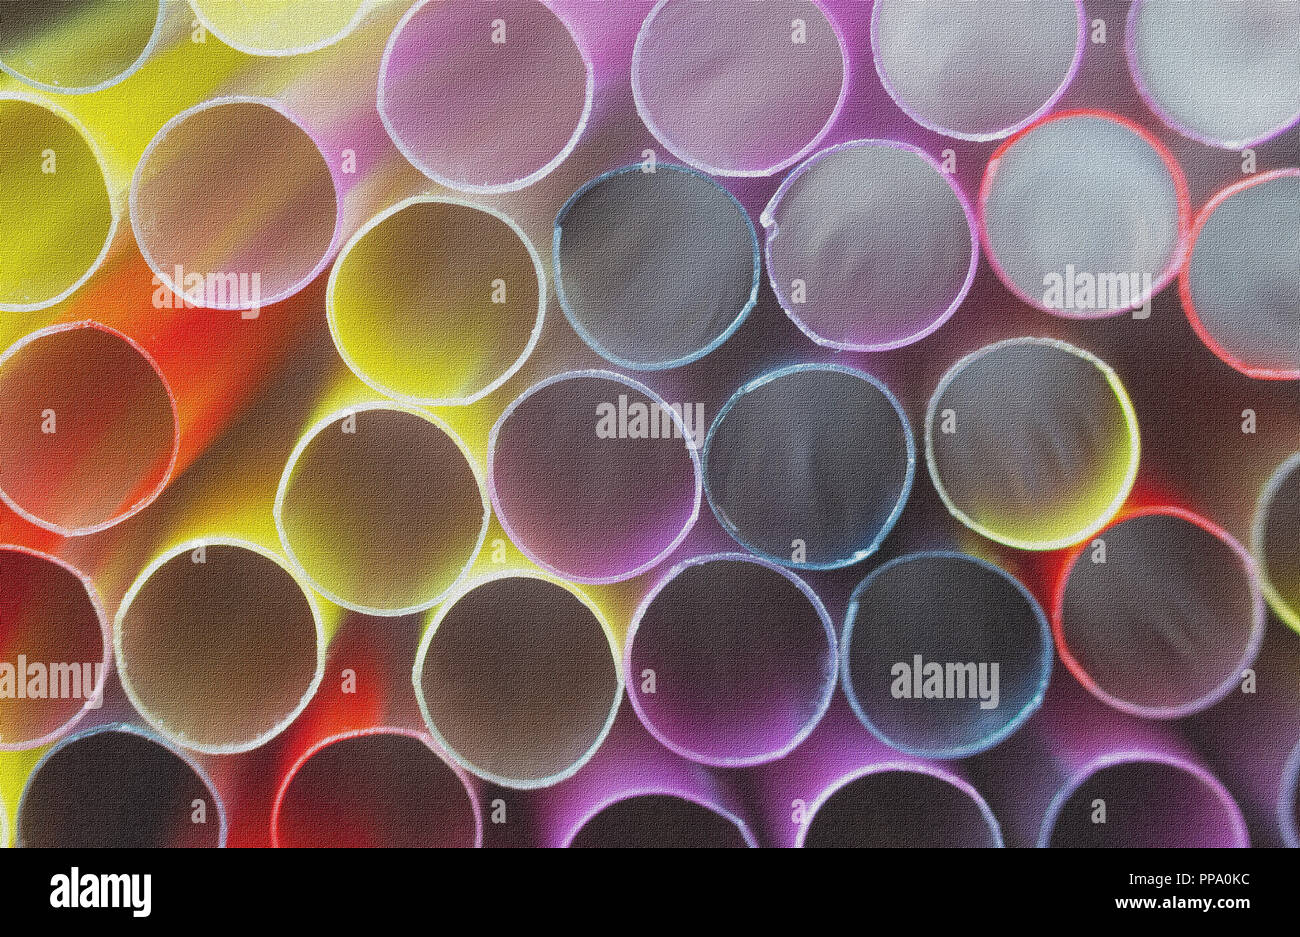 Group Of Plastic Straws For Drinks. Neon Lights Tubes. Abstract Background. Canvas Effect - Stock Image